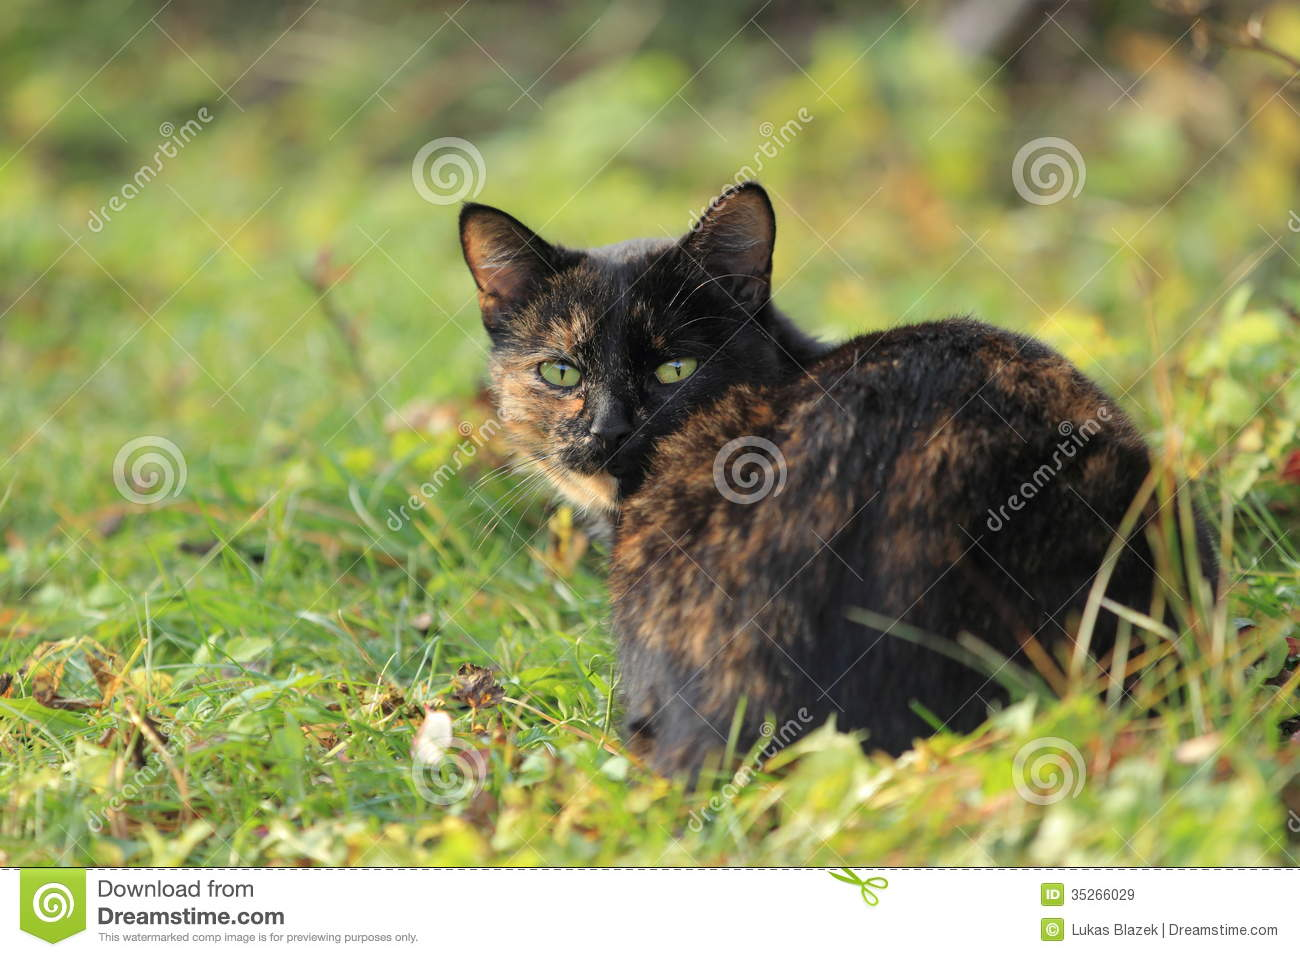 Black-and-brown Cat Royalty Free Stock Images - Image: 35266029